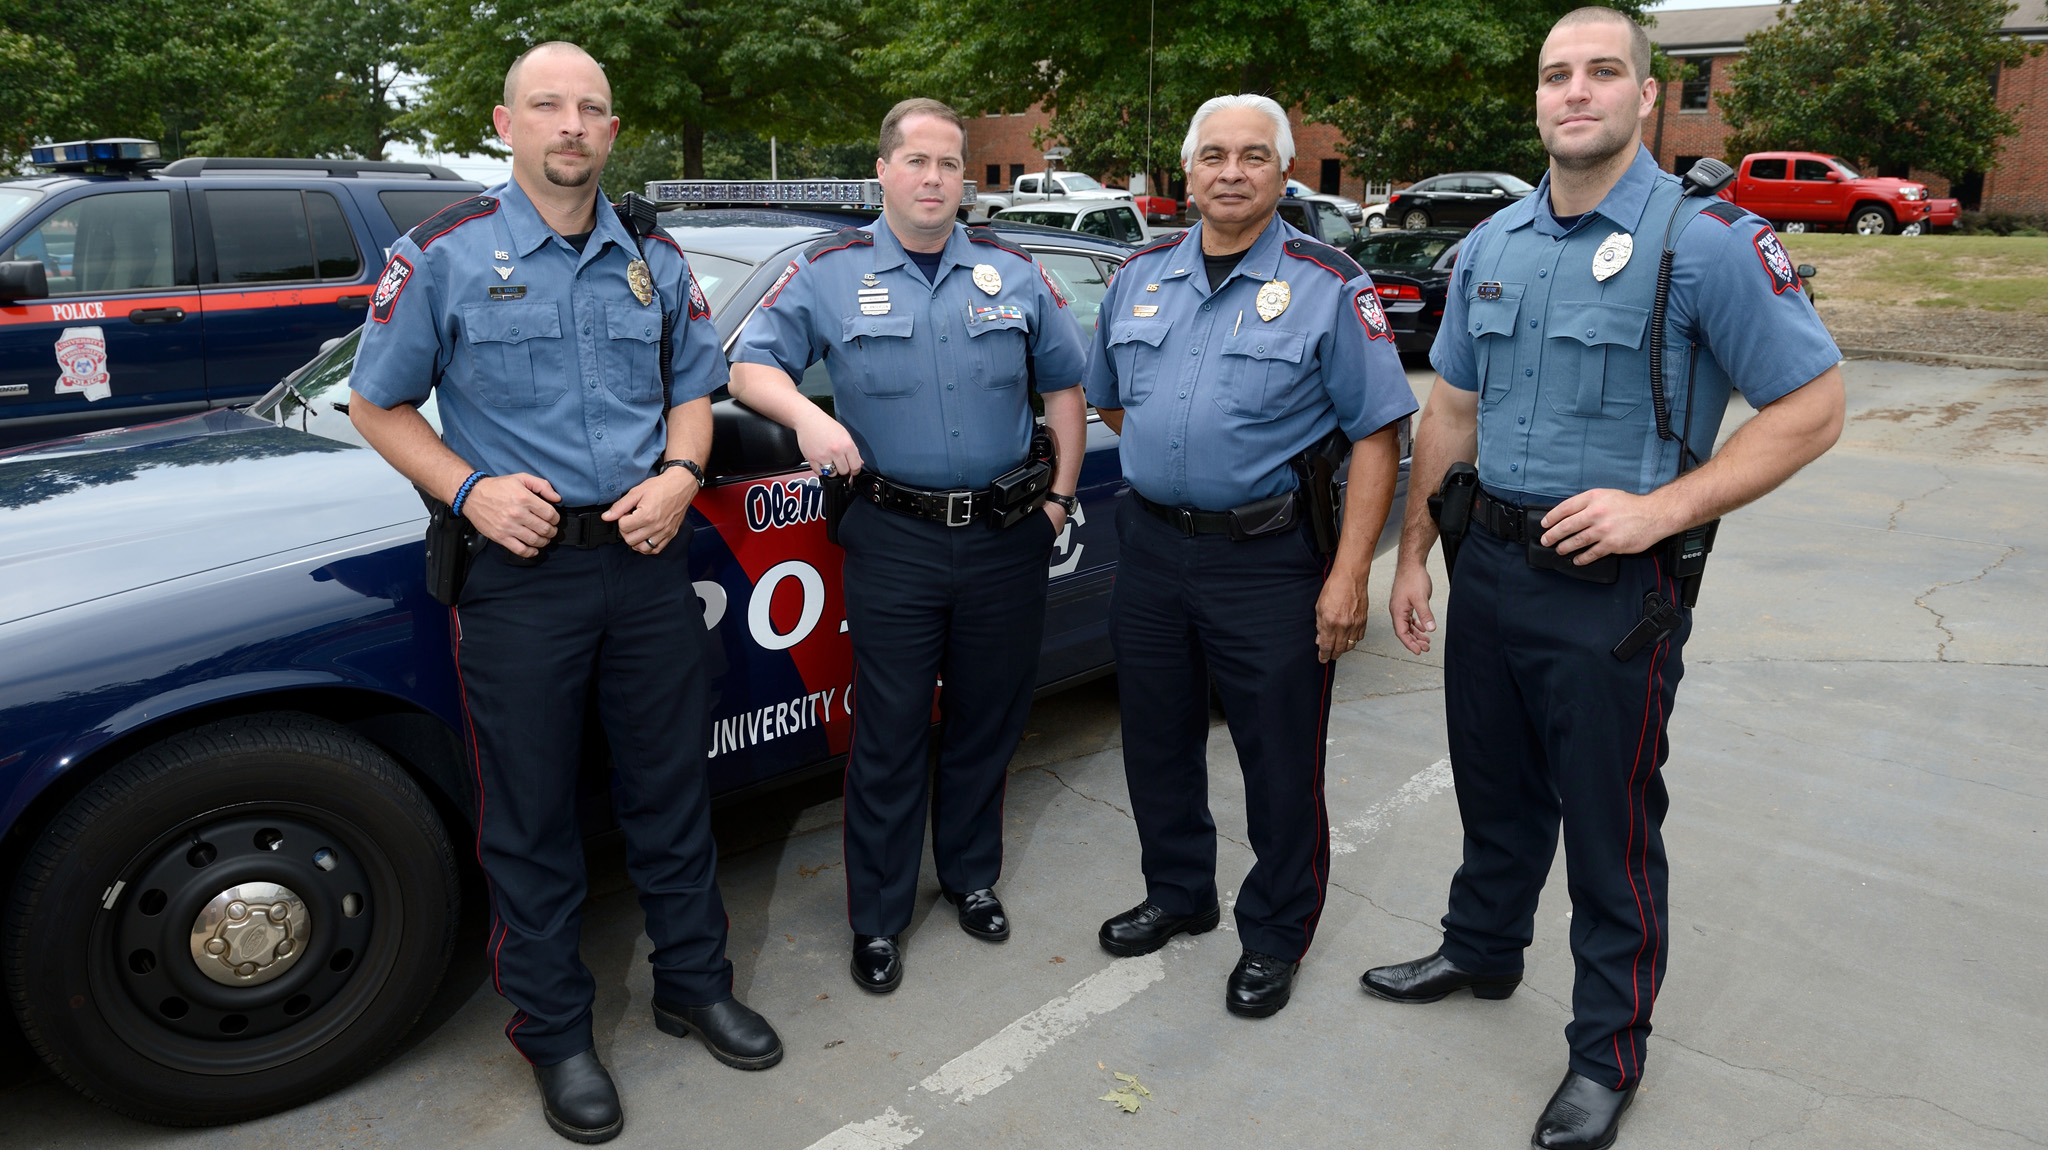 UPD Officers' Fast Response Helps Accident Victims Avoid